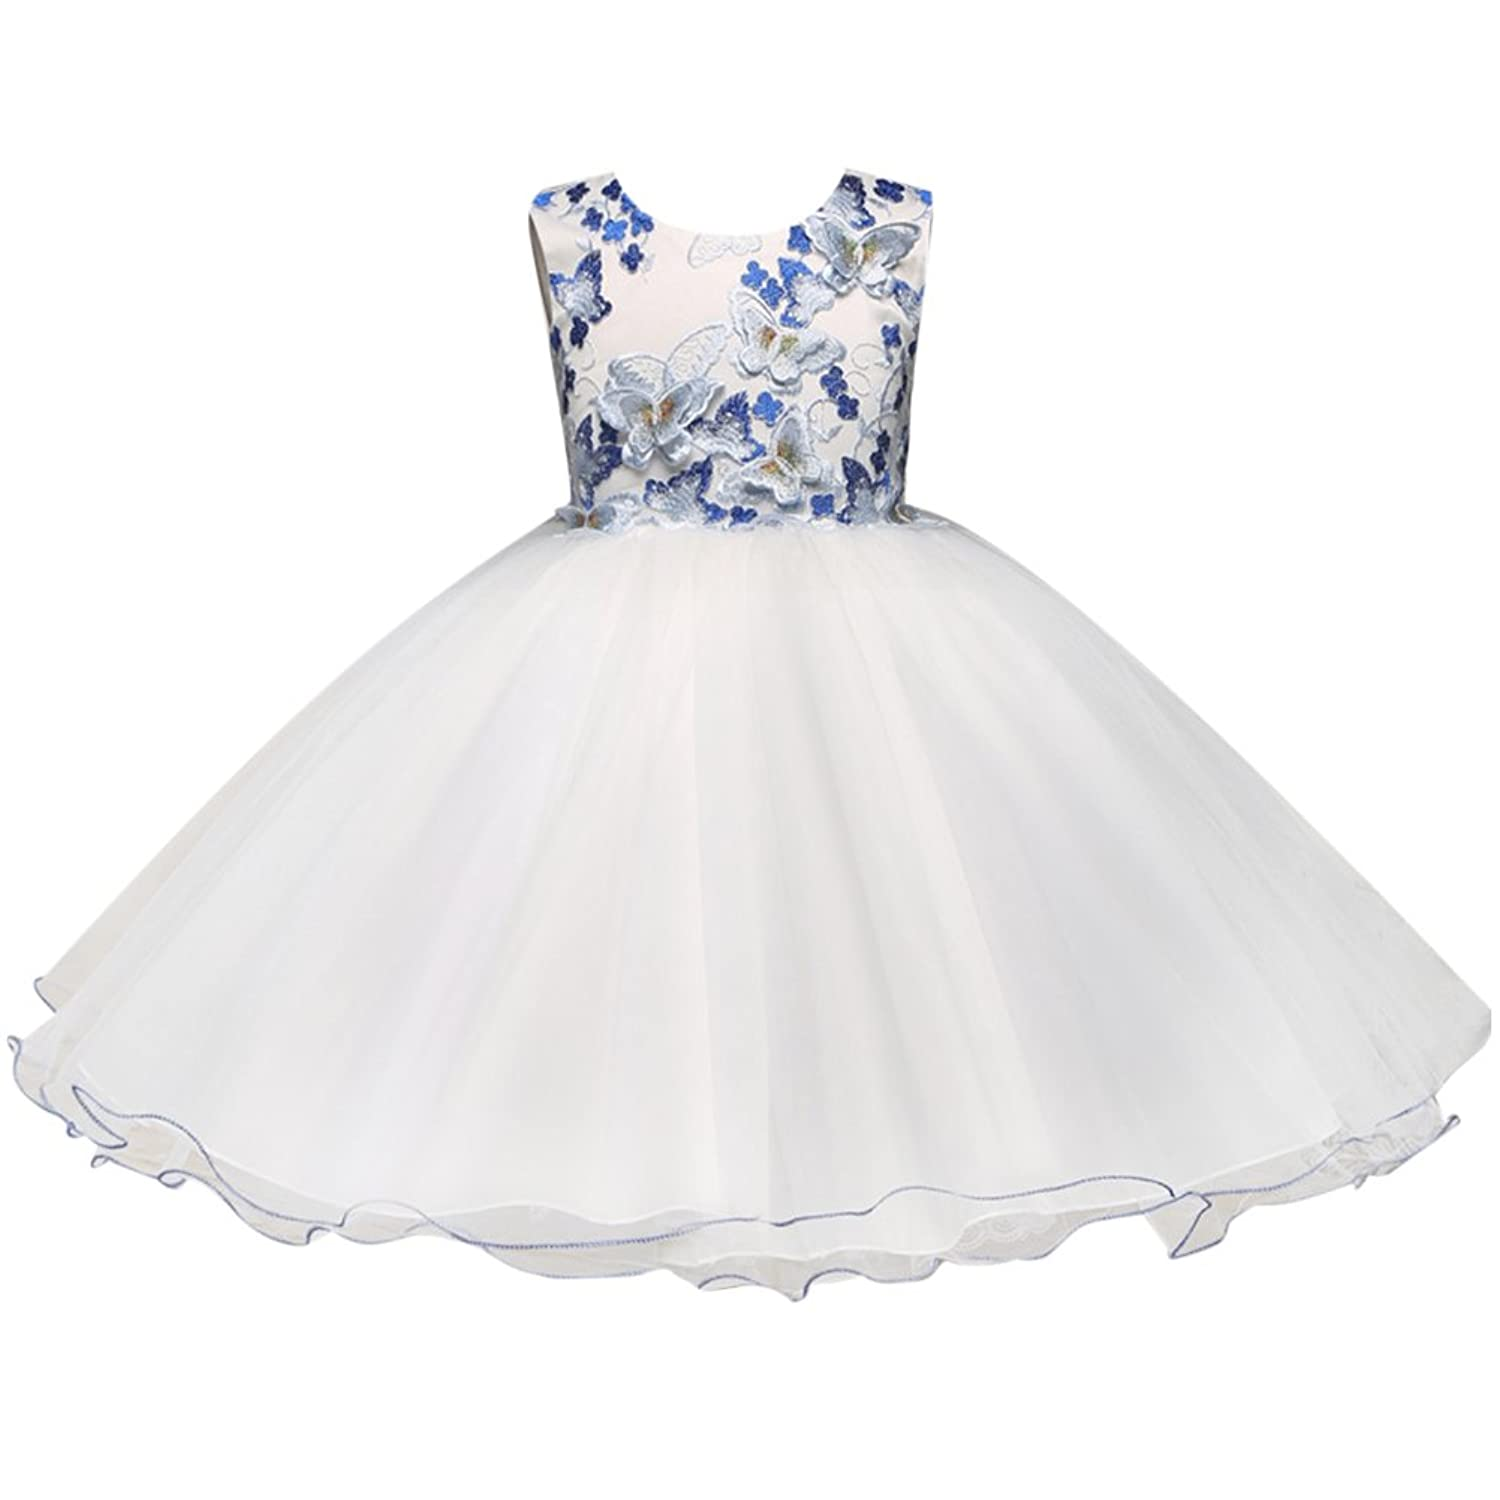 Zhuhaitf 高品質 Big Girls Dress Embroidery Butterfly Flower Princess Formal Party Wedding Bridesmaid Tulle ドレス for 3-8 year old